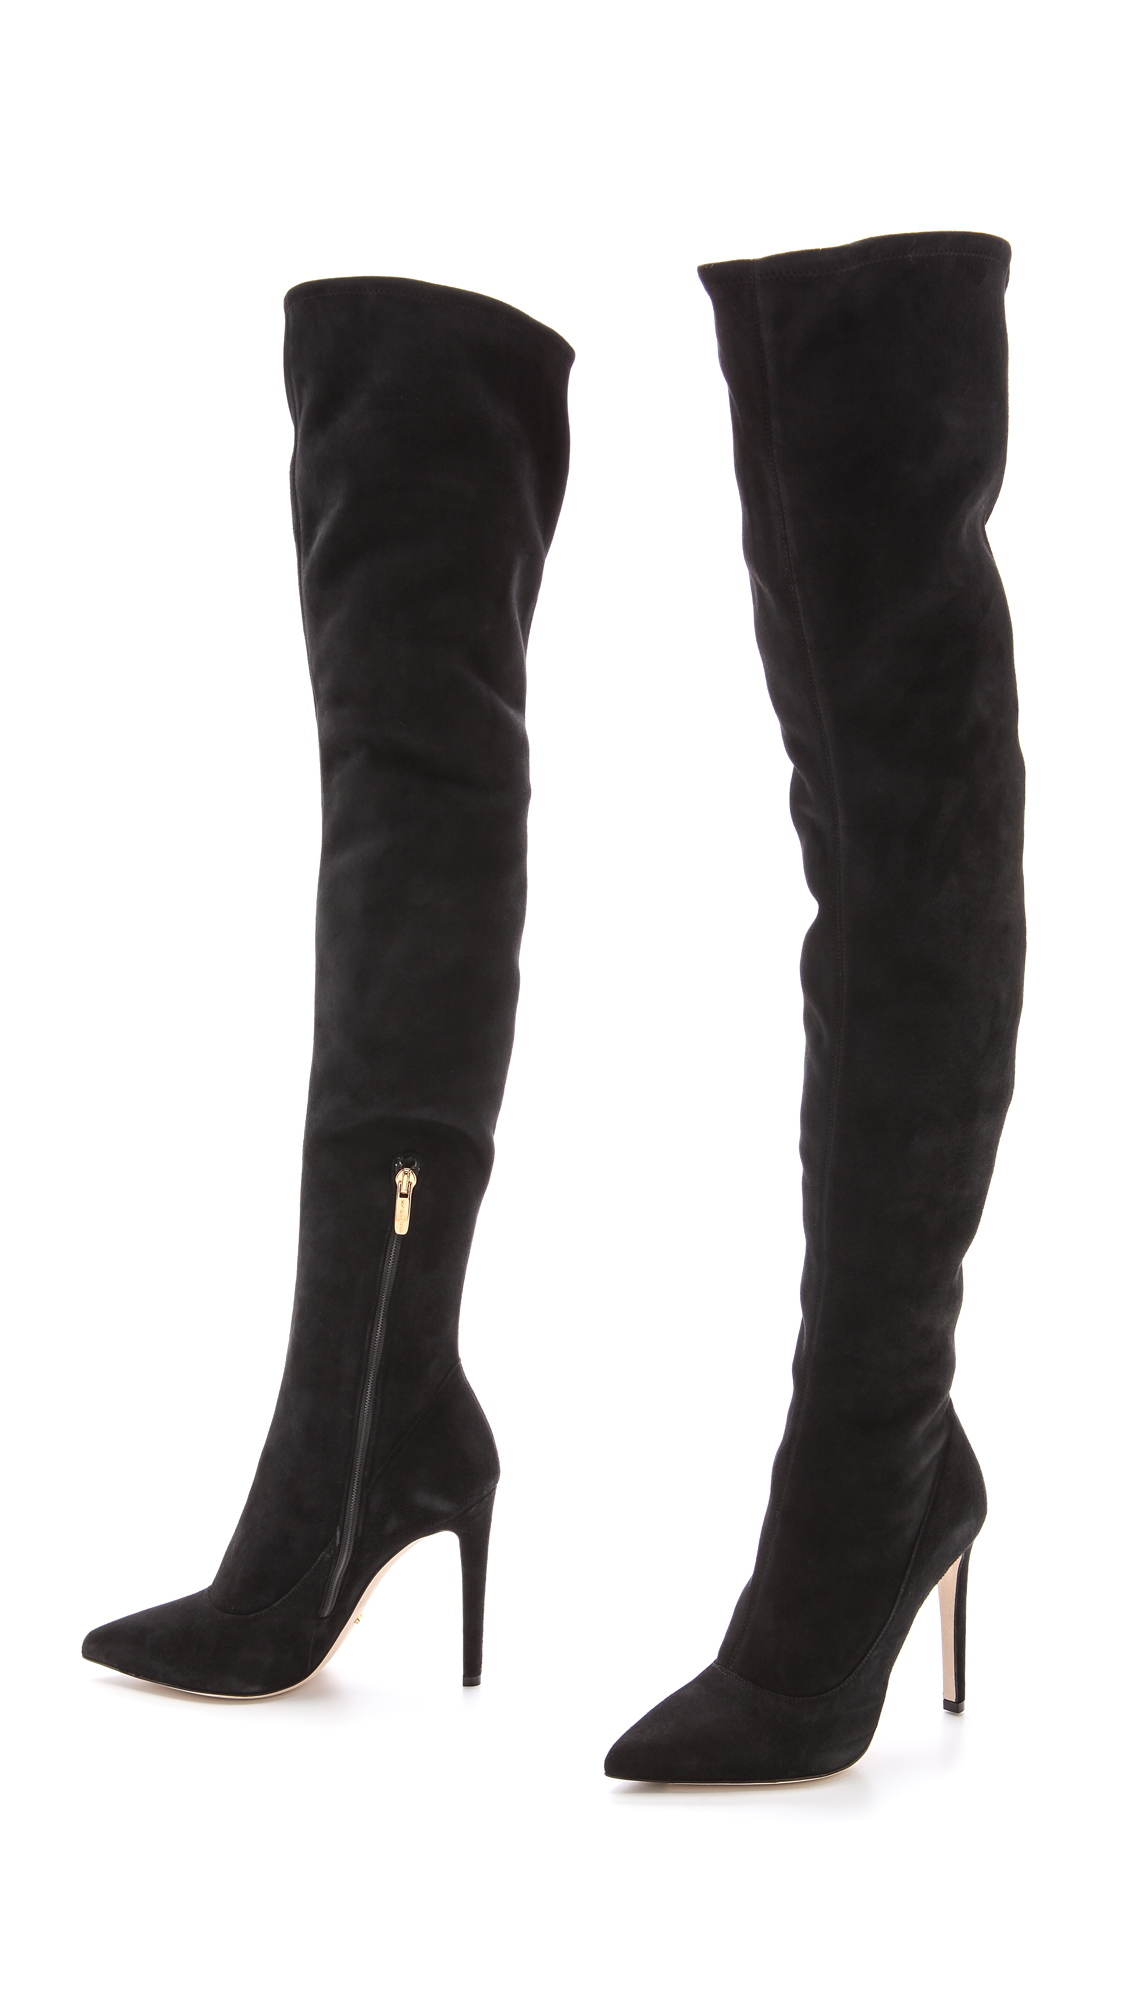 Over The Knee Suede Black Boots K26m1qmr